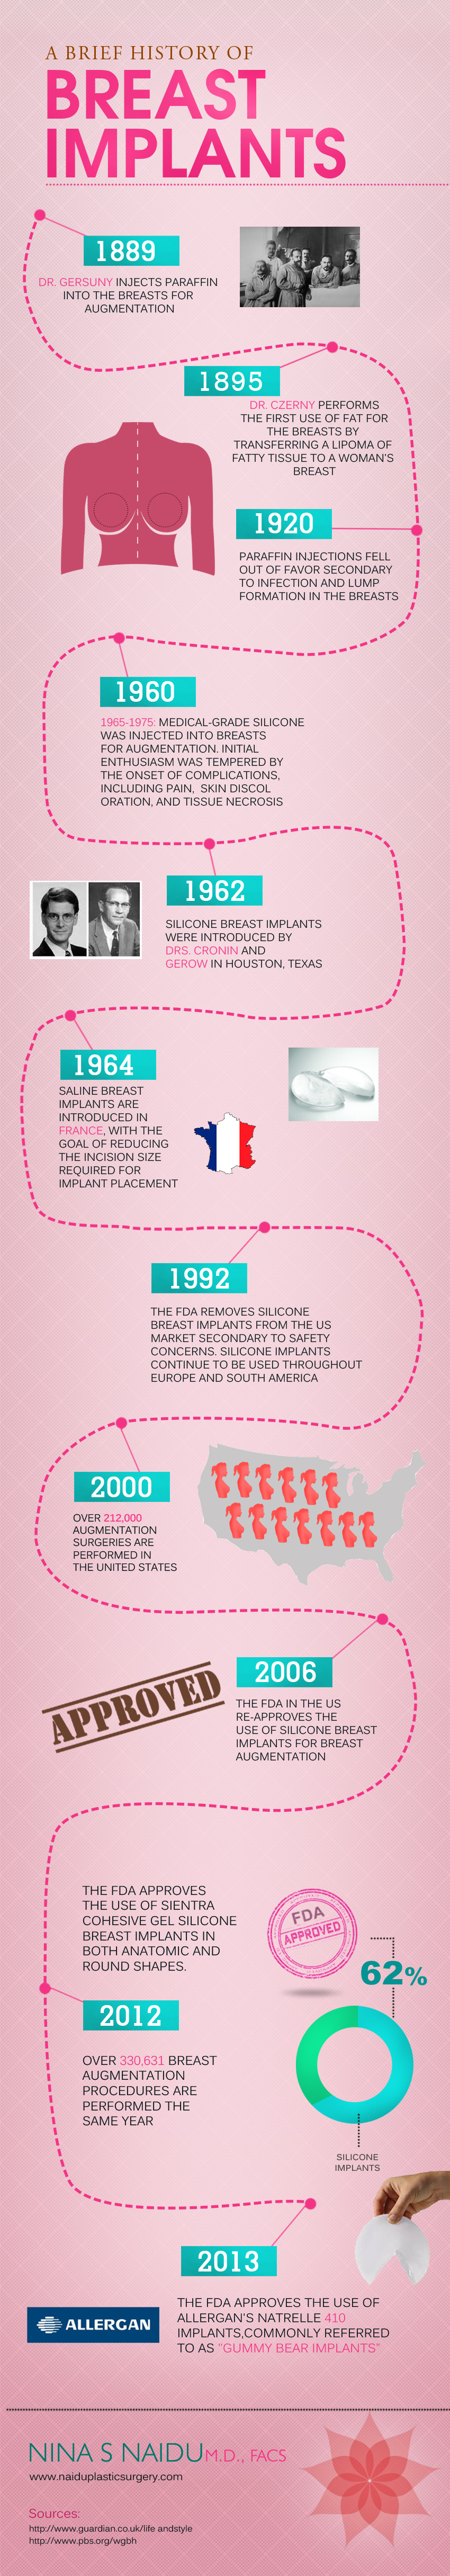 a short history of breast implants Moda health medical necessity criteria breast implant removal page 1/7   date of origin: 12/1999  incidence and severity of short-term complications.